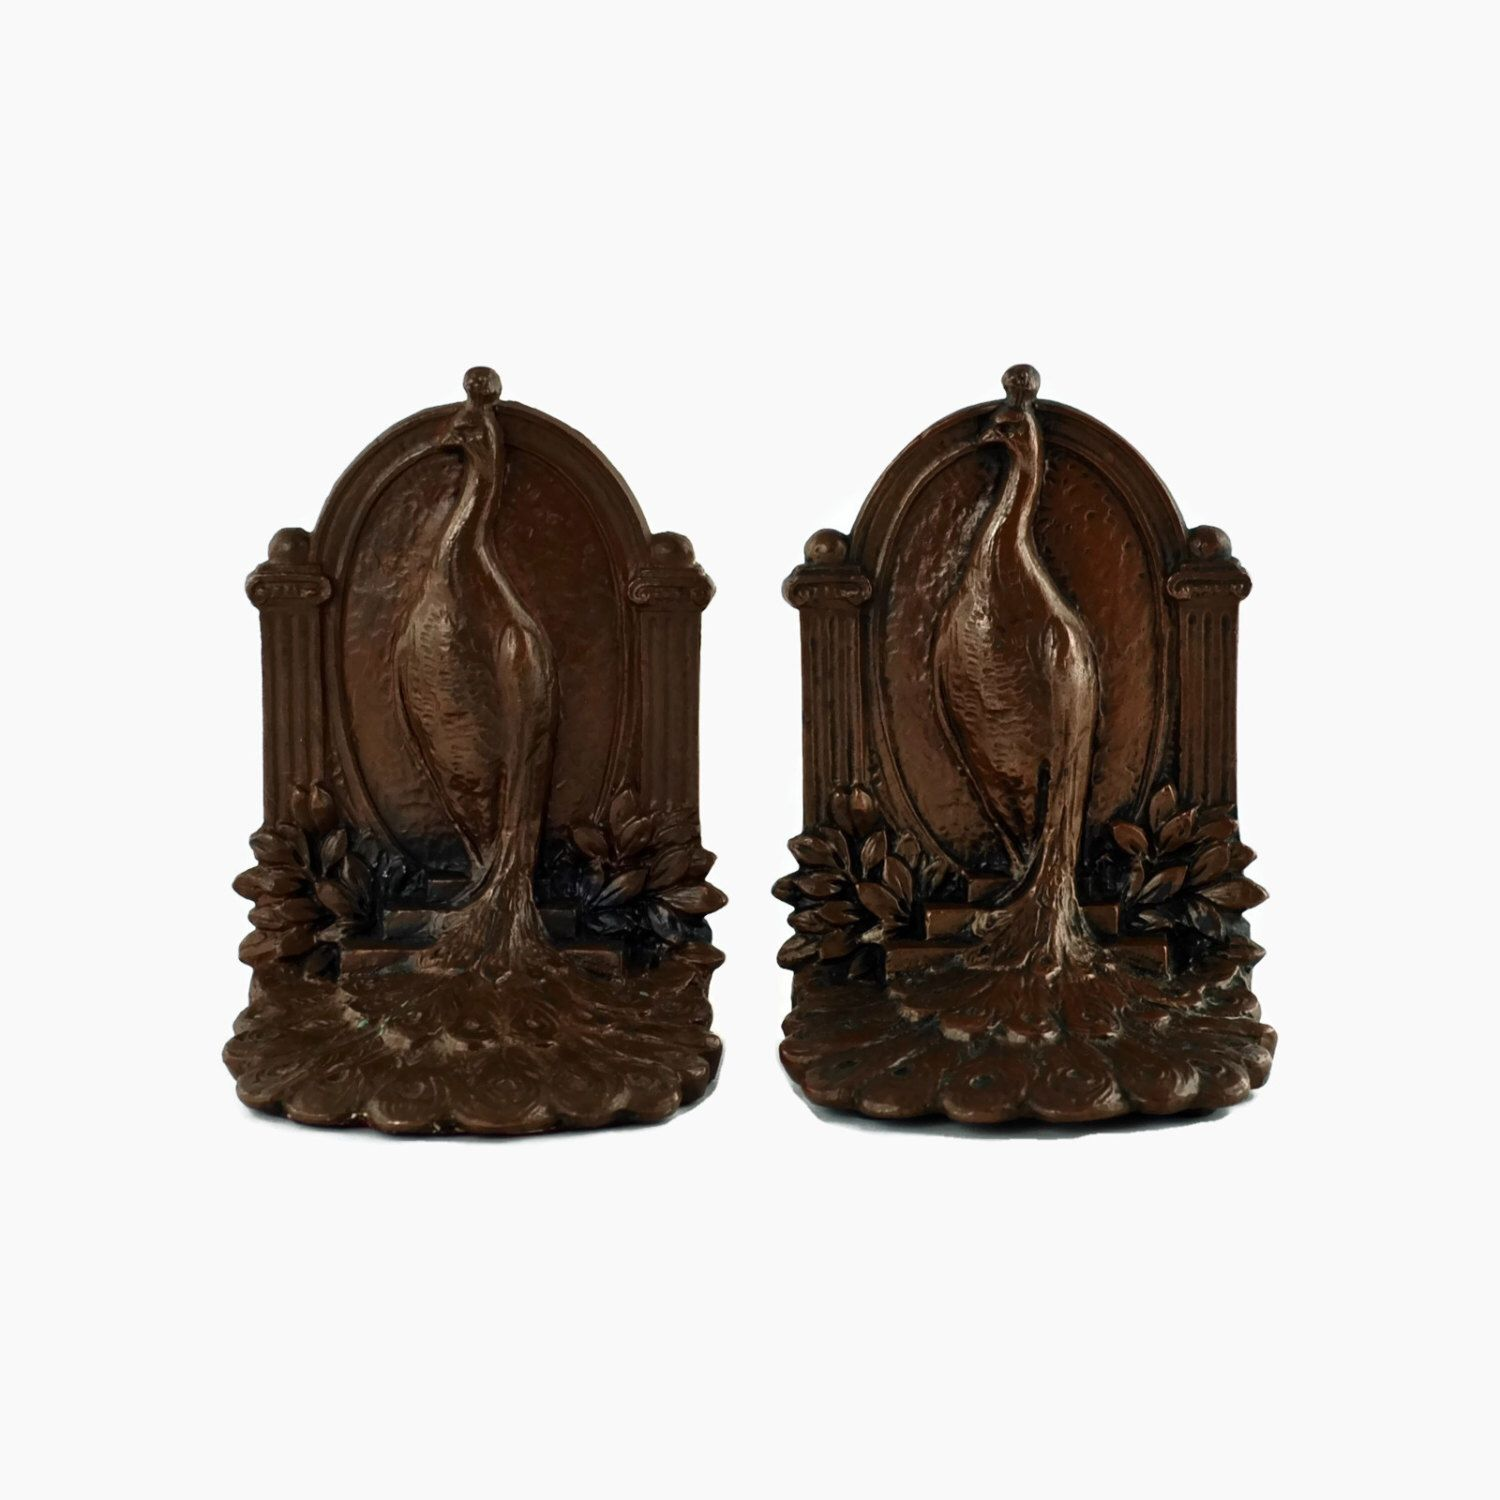 Antique Weidlich Brothers Peacock Bookends with a Bronze Finish by BirneyCreek on Etsy https://www.etsy.com/listing/230446080/antique-weidlich-brothers-peacock